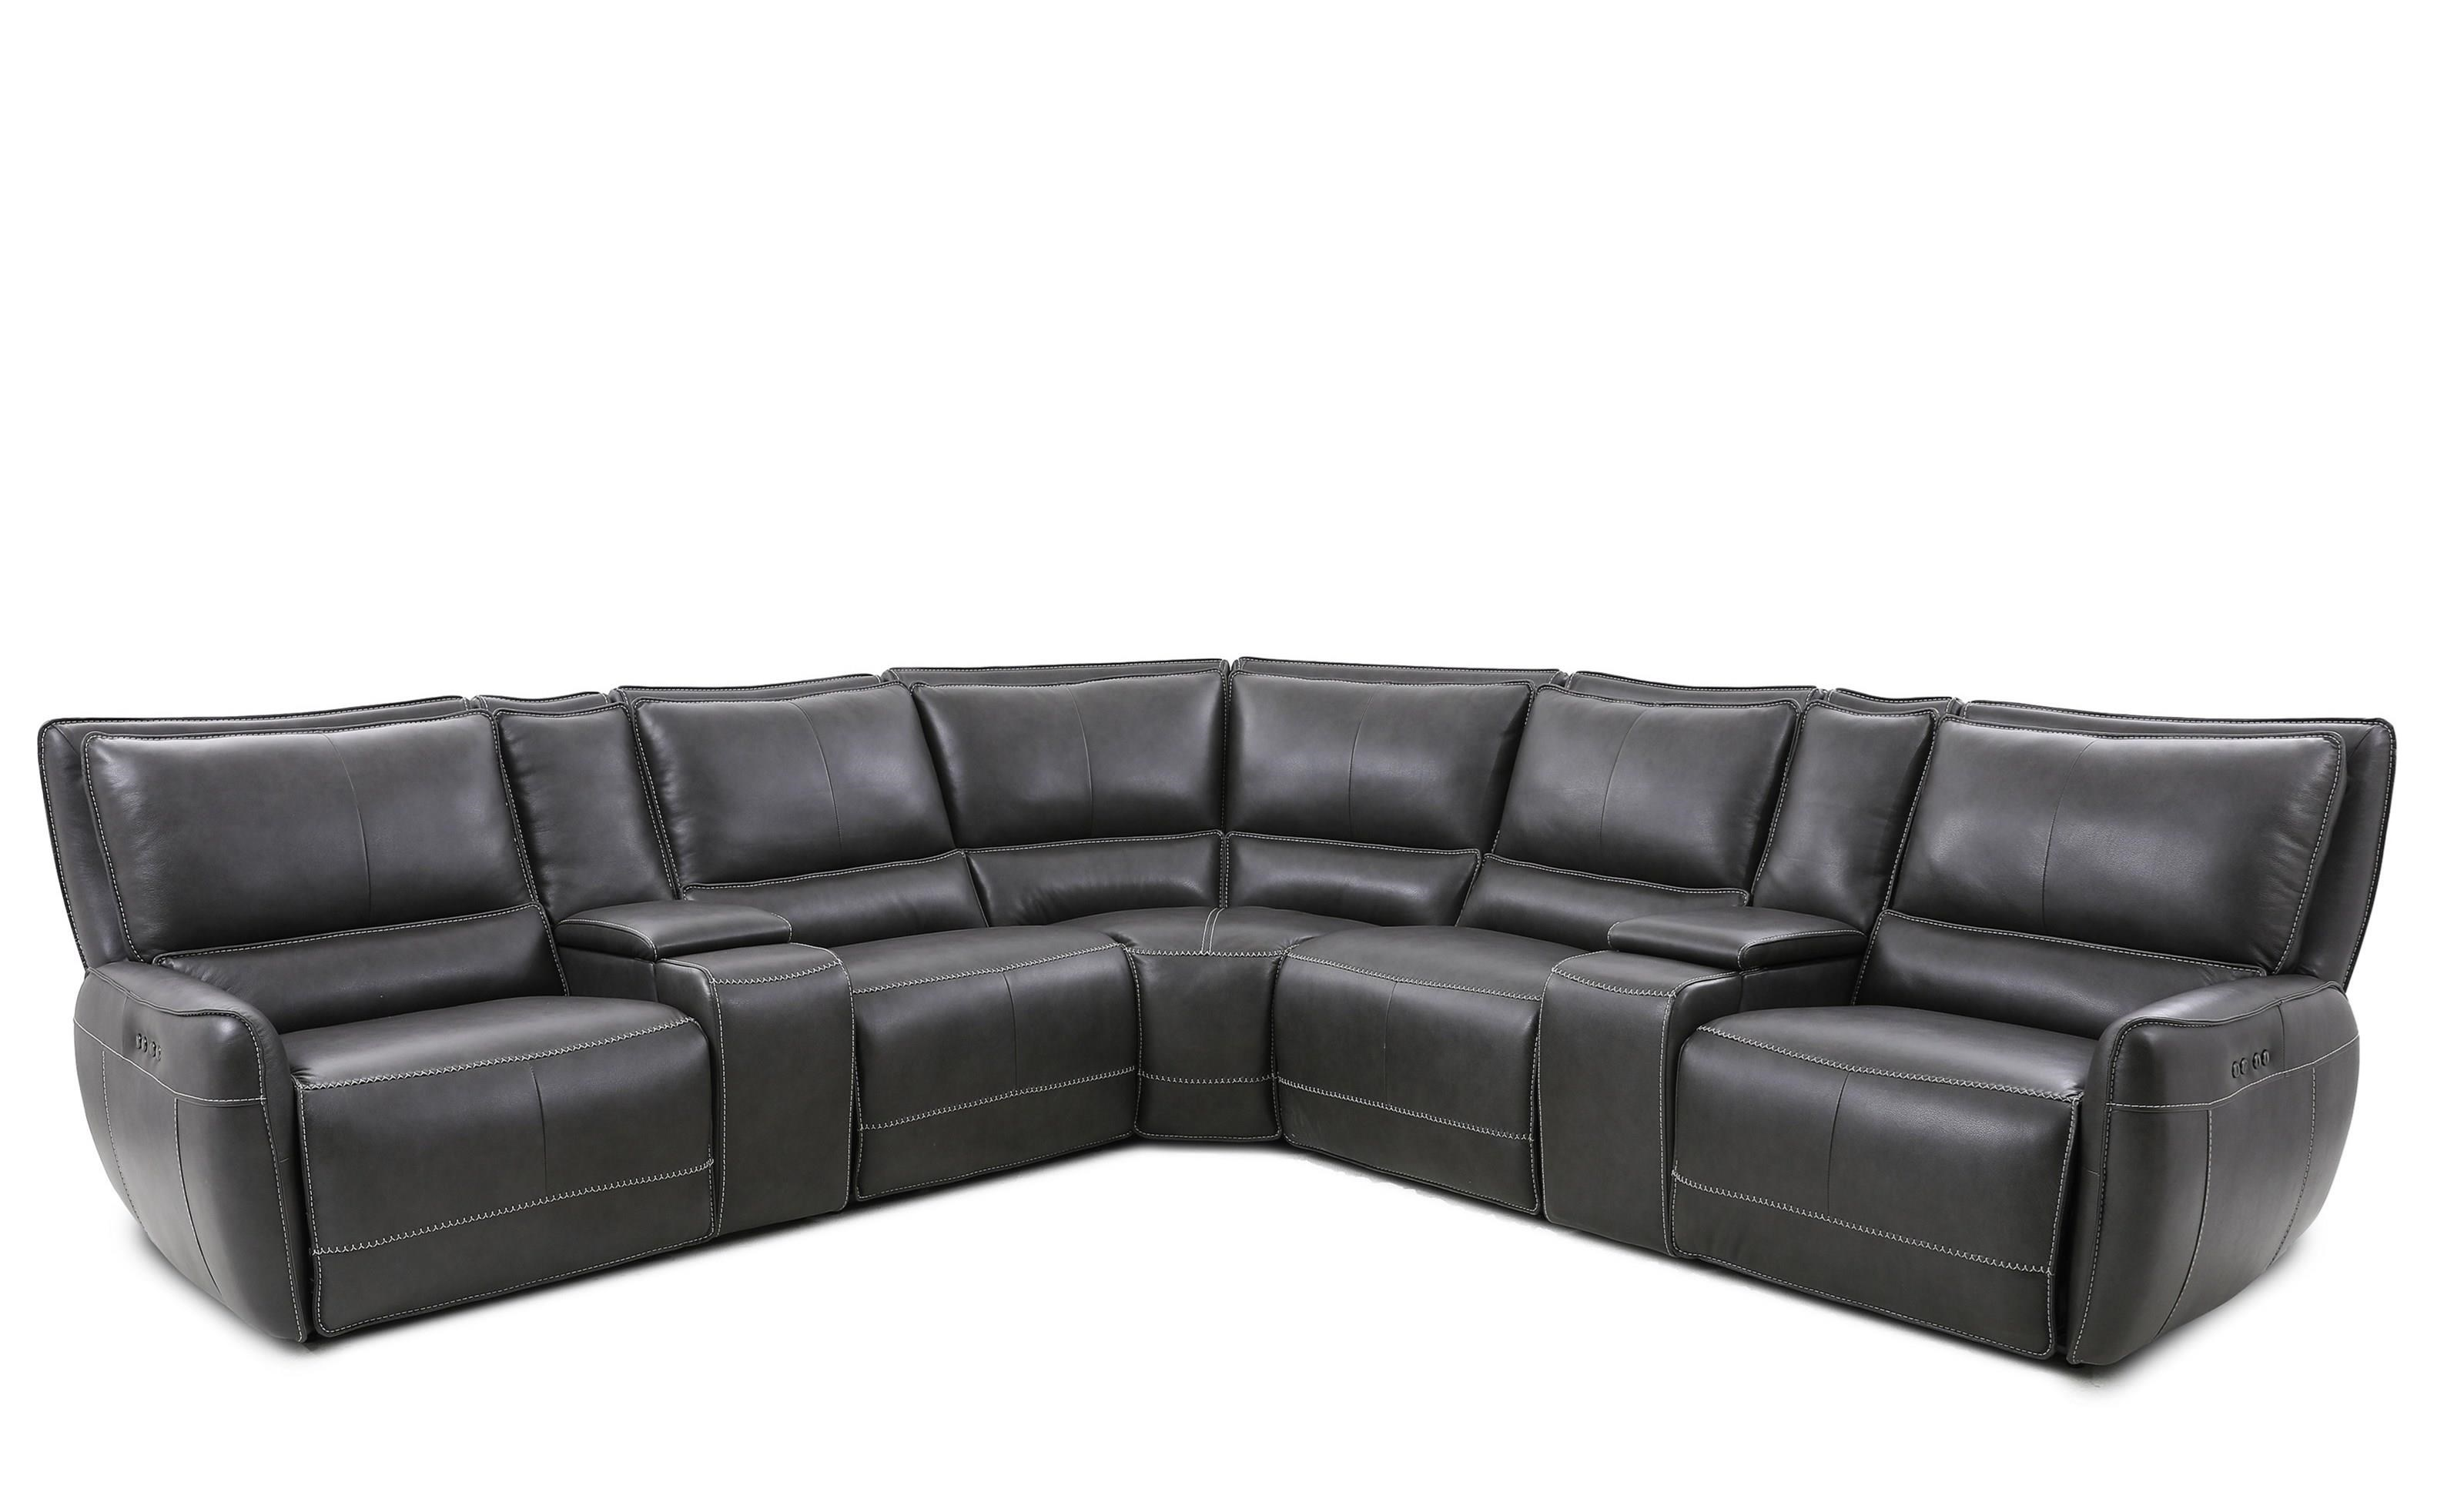 90080 7-Piece Power Reclining Sectional by Cheers at Household Furniture